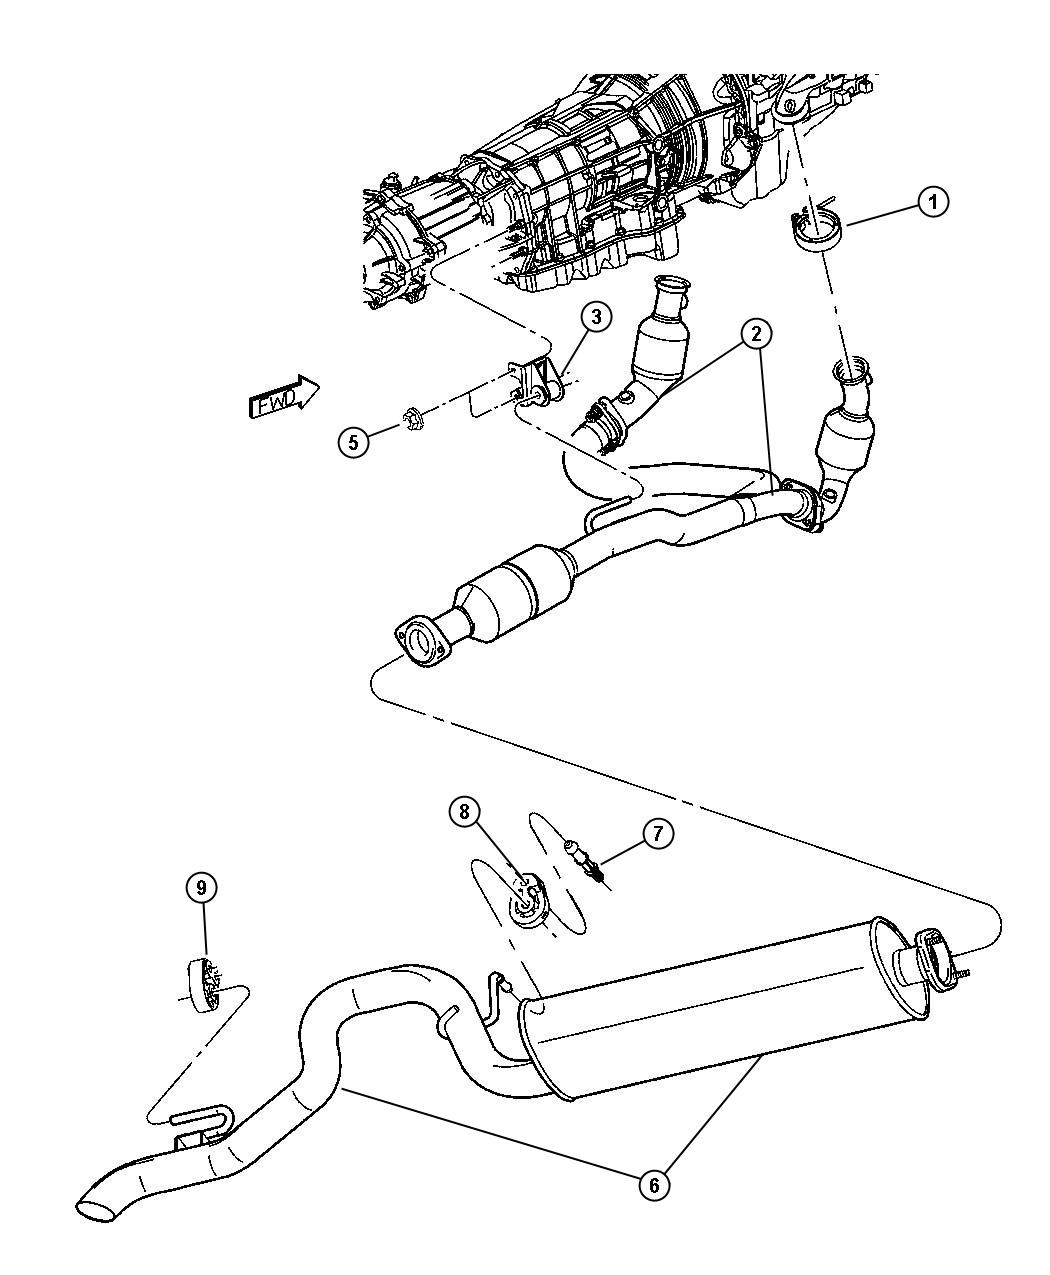 Jeep Liberty Used for: MUFFLER AND TAILPIPE. Exhaust